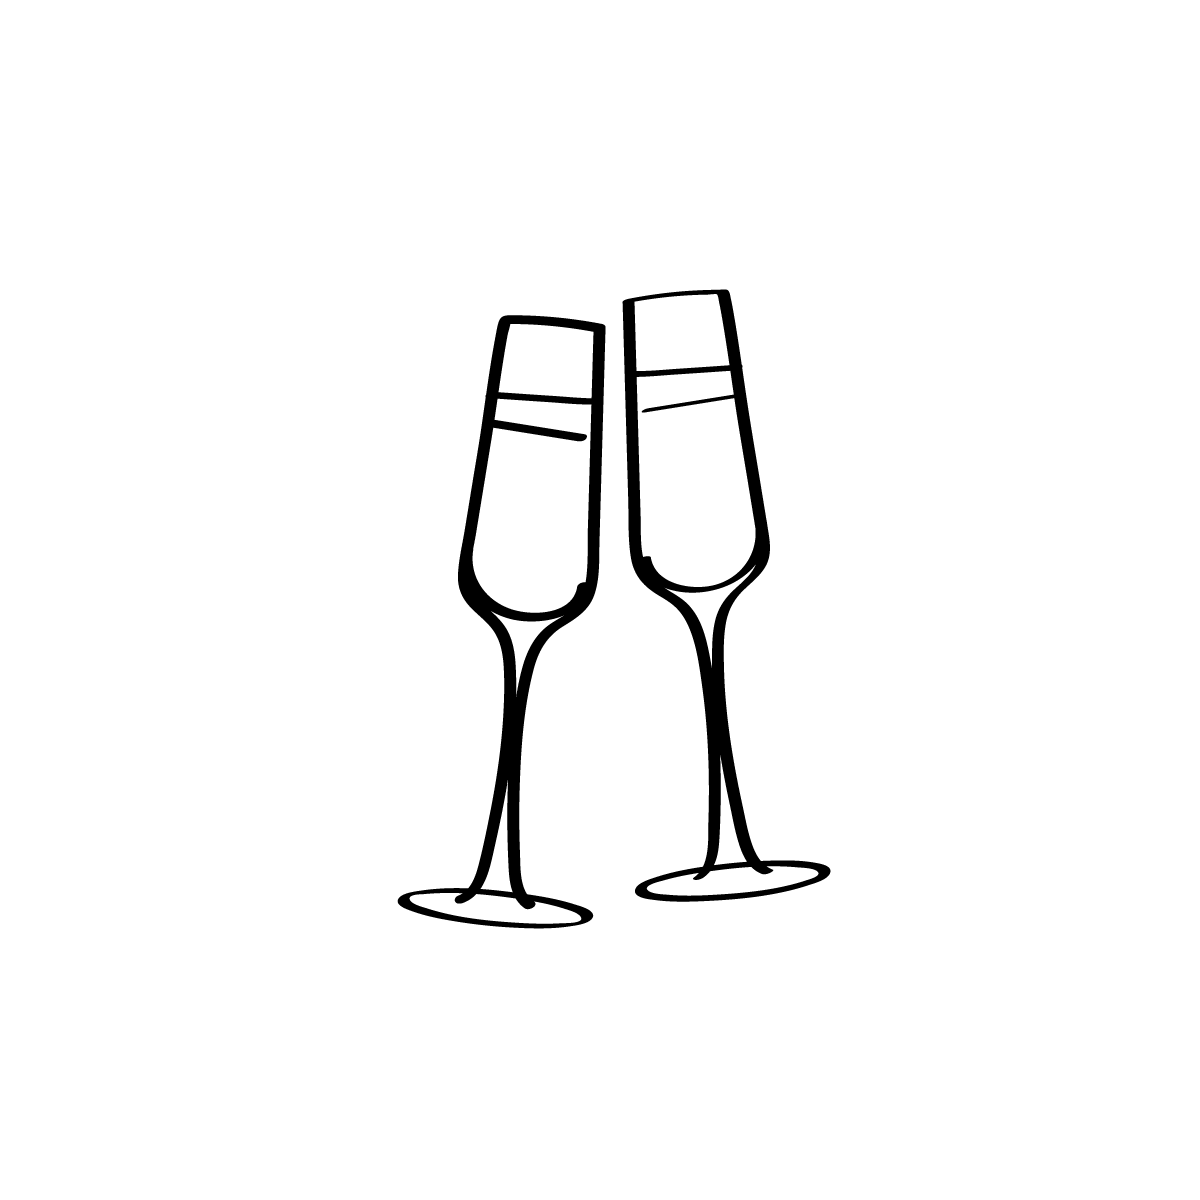 Minimal Hand Drawn Icons Of Two Clinking Champagne Glasses For